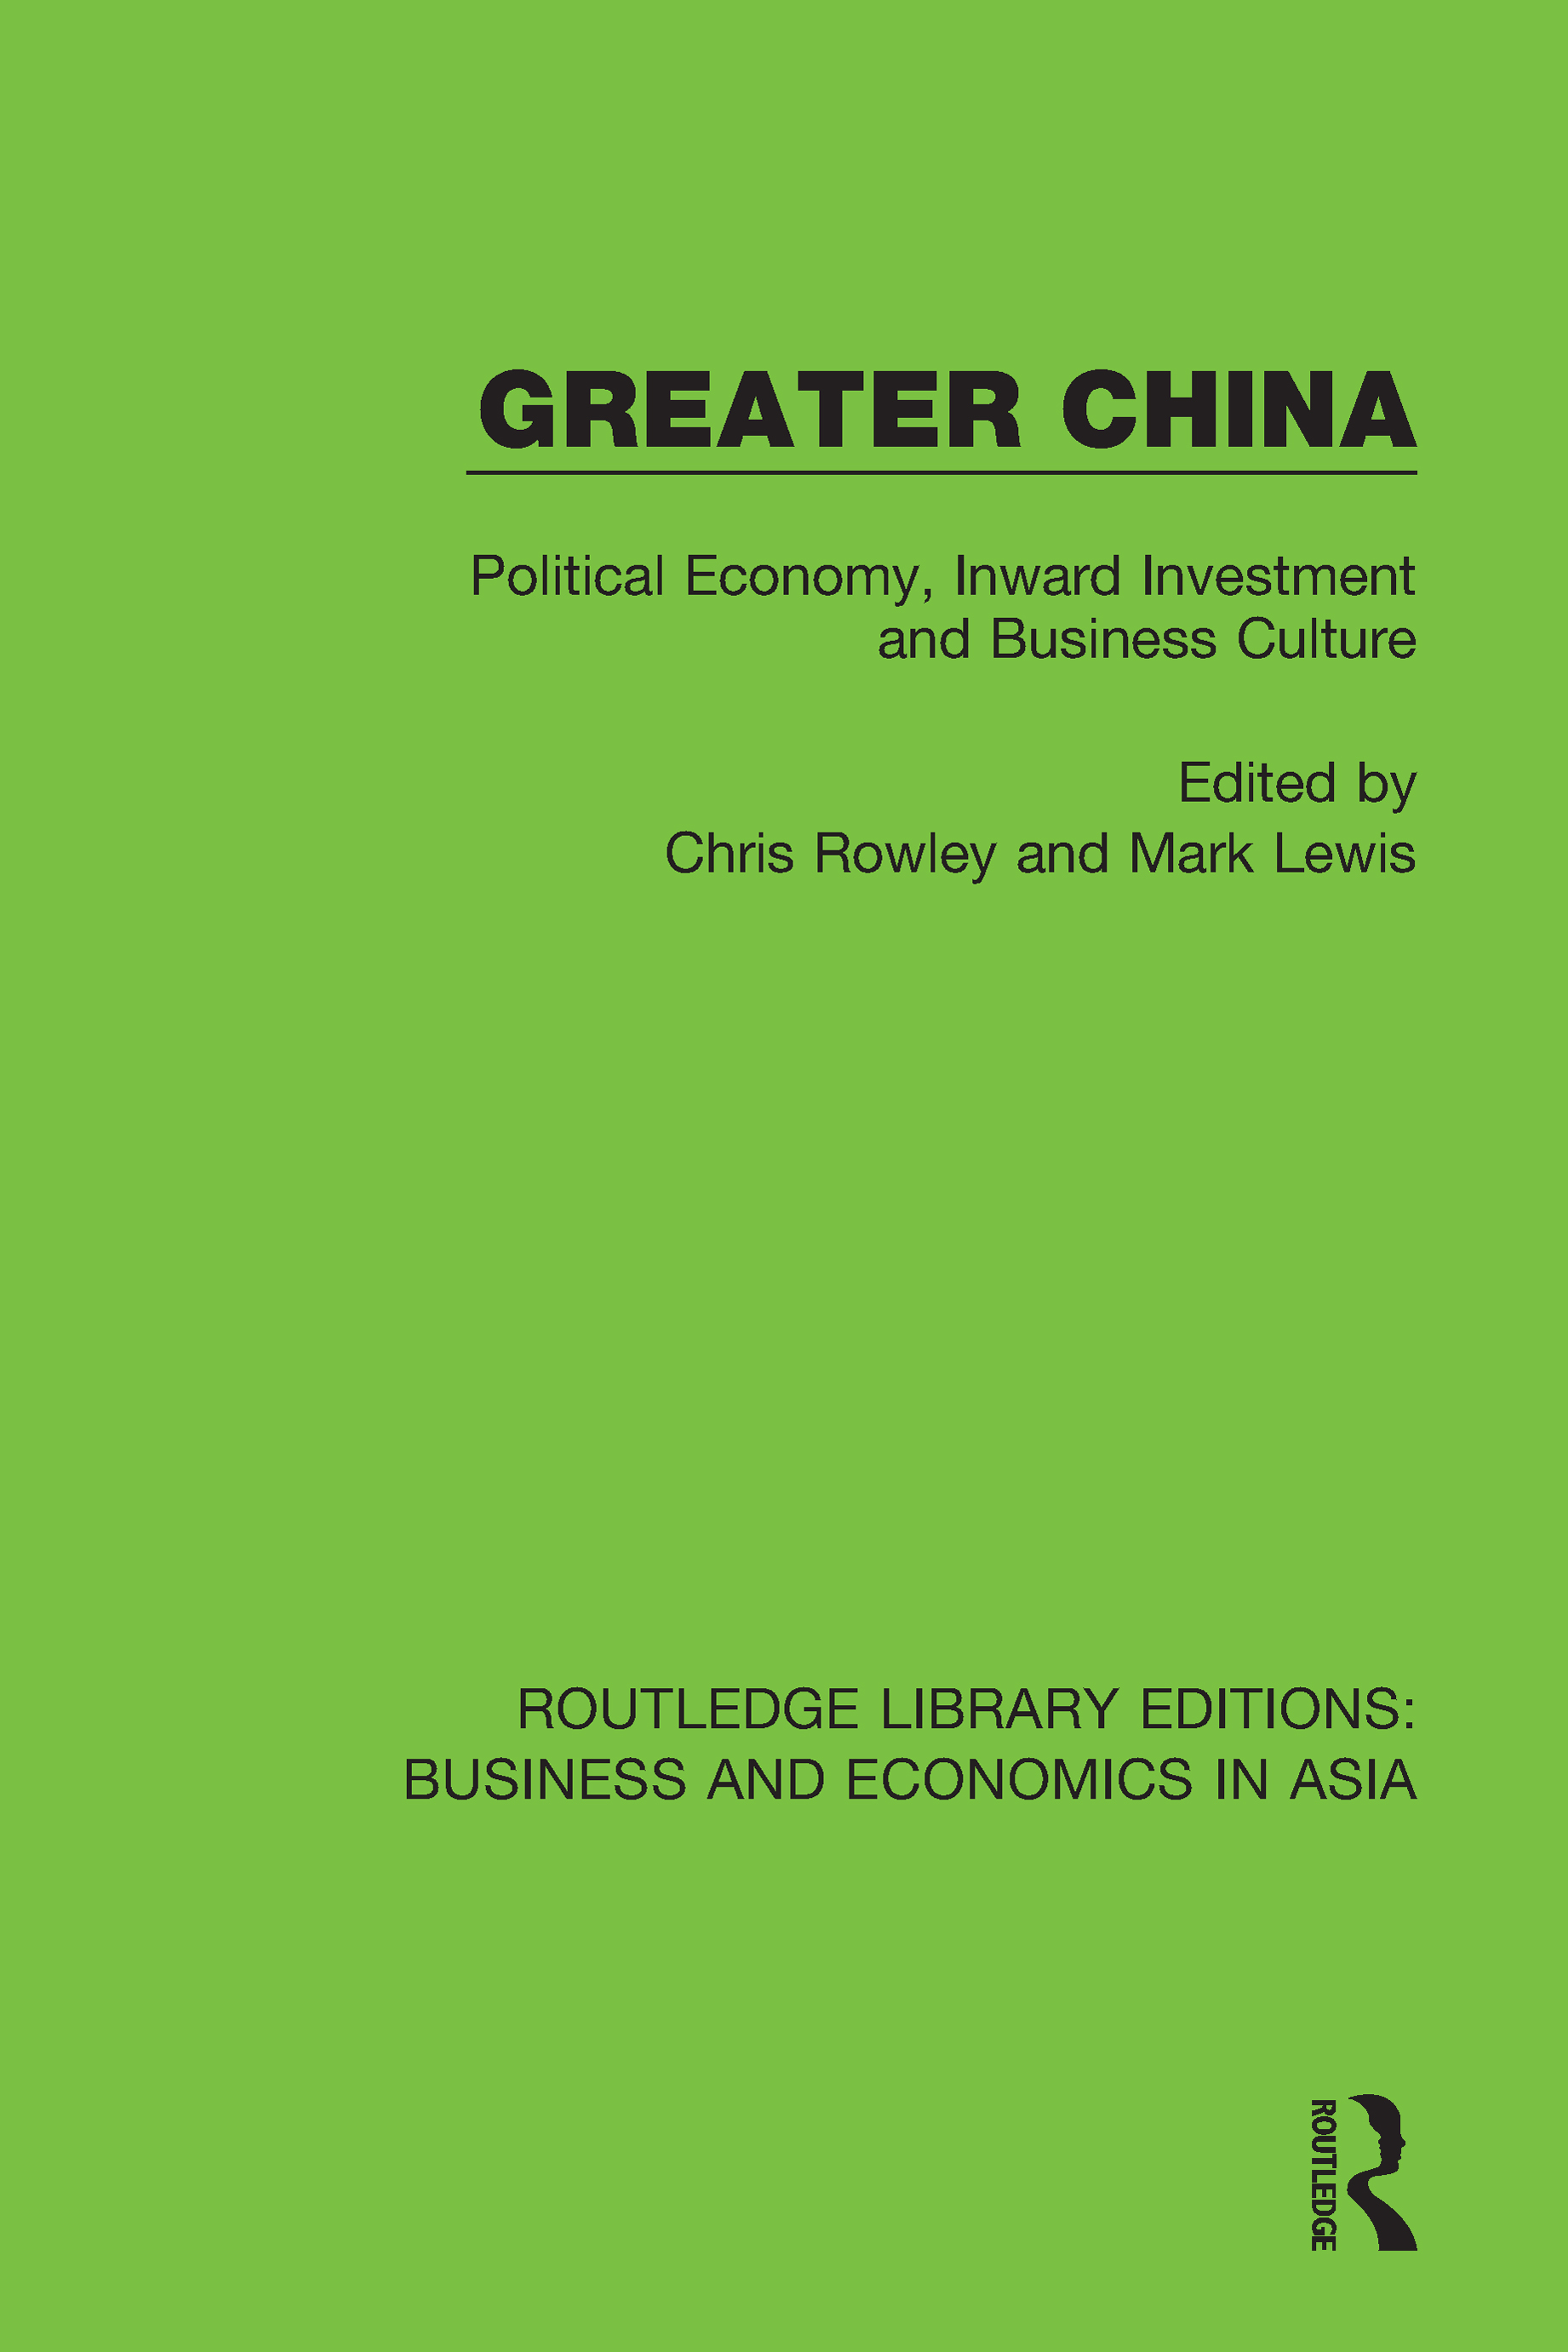 Greater China